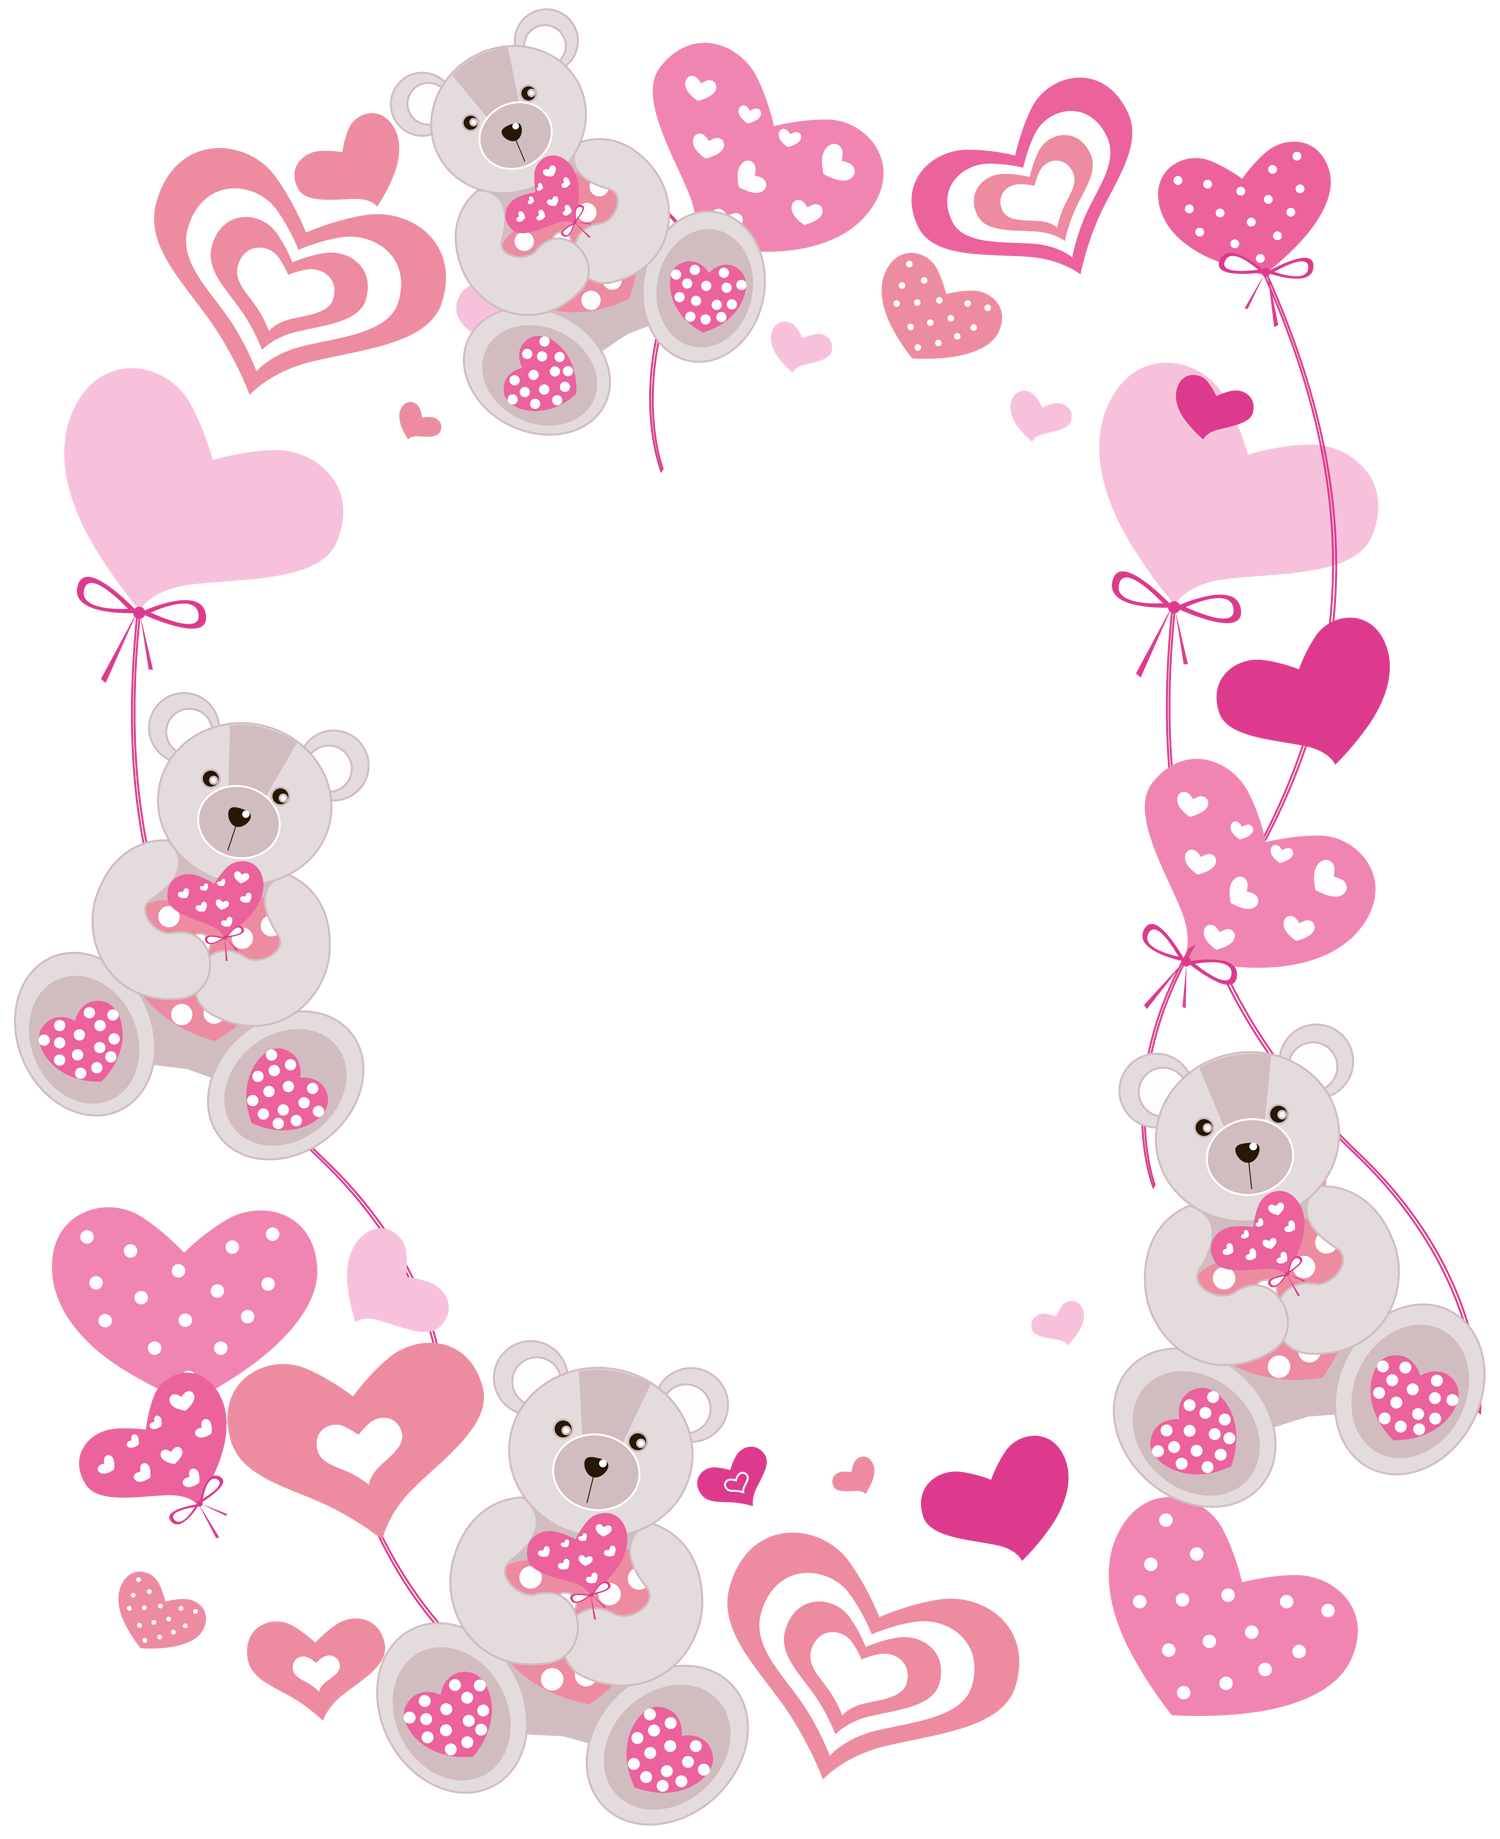 Frames clipart baby girl. Transparent hearts png photo